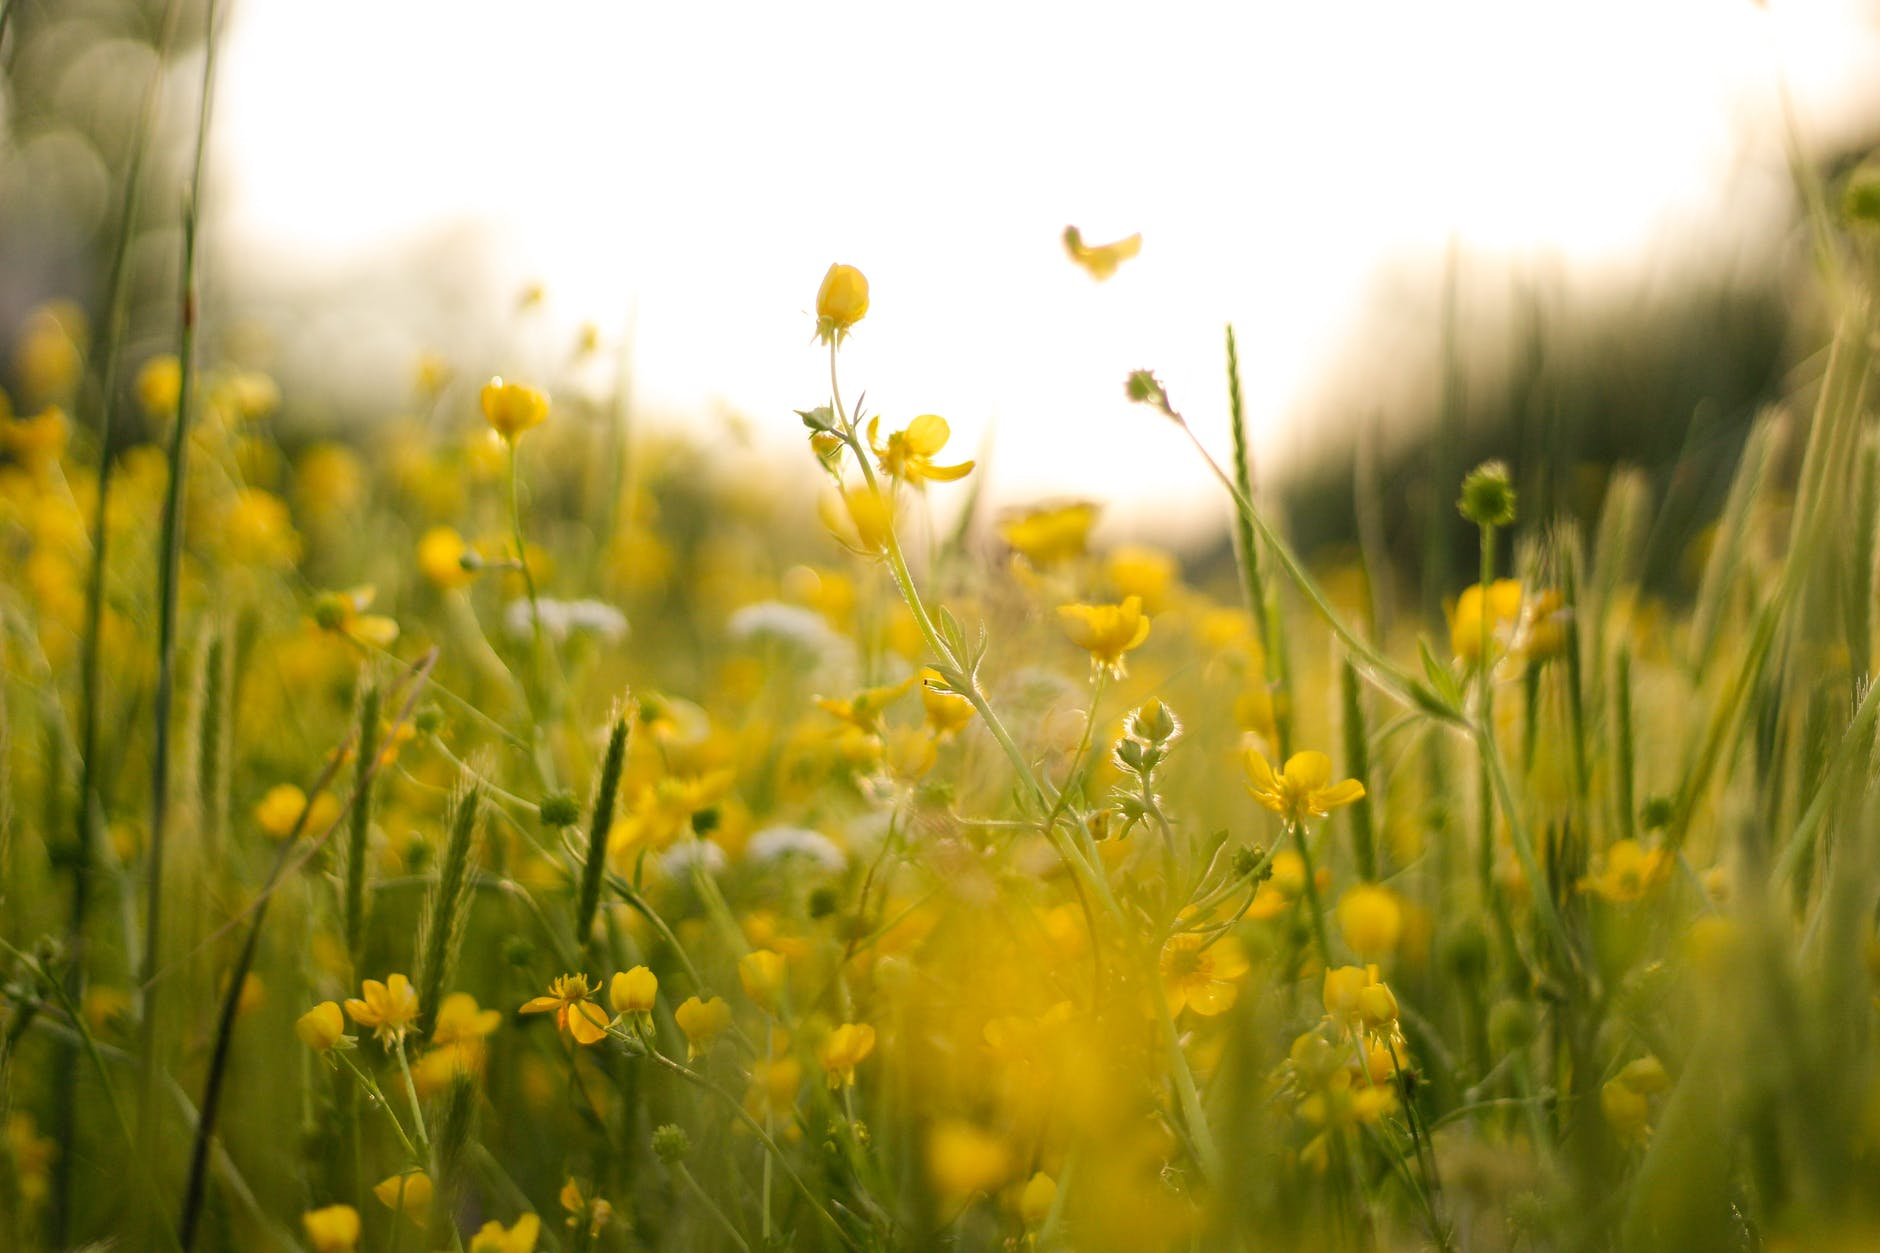 picturesque field with small yellow wildflowers